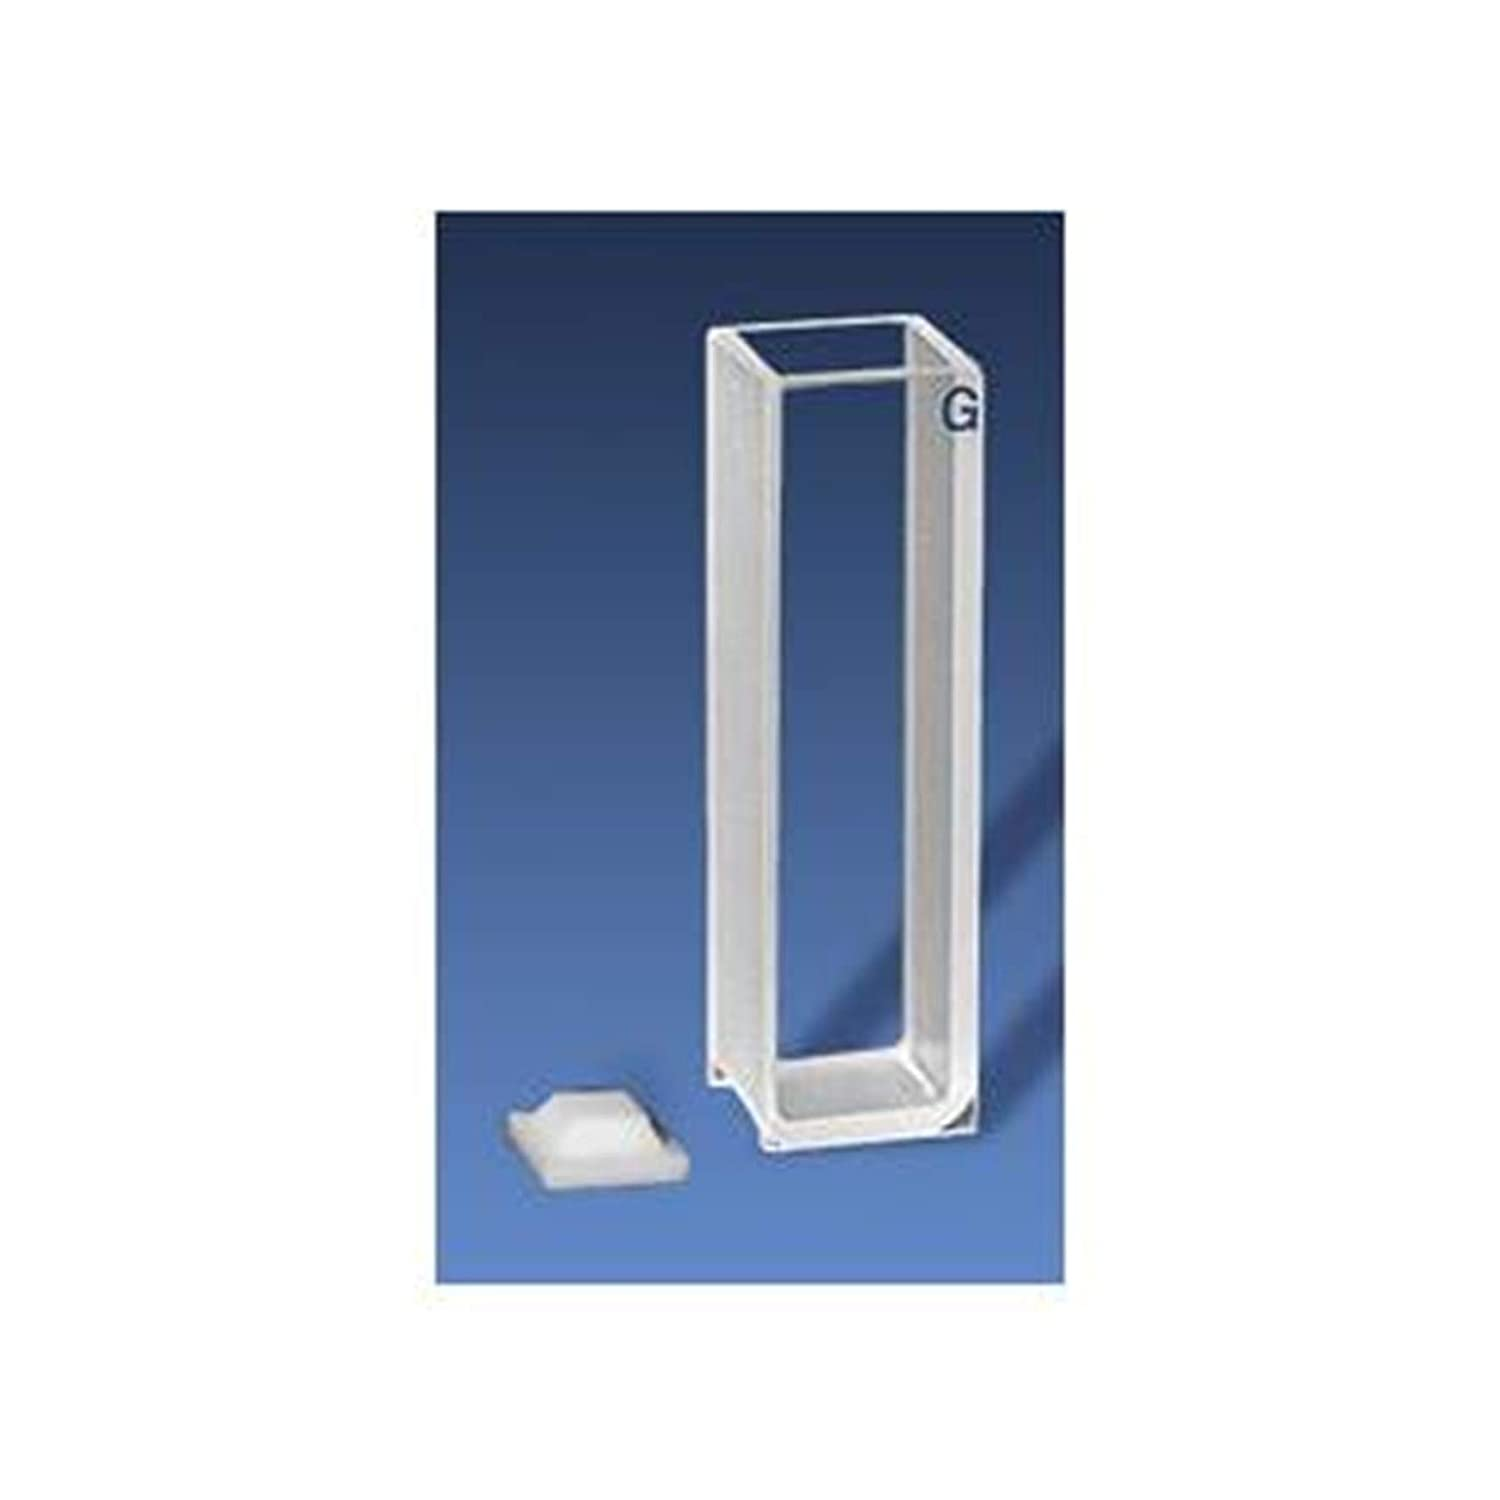 Labomed G4 Standard Cell with Lid, Glass, 10mm, 3.5 ml (Pack of 2)